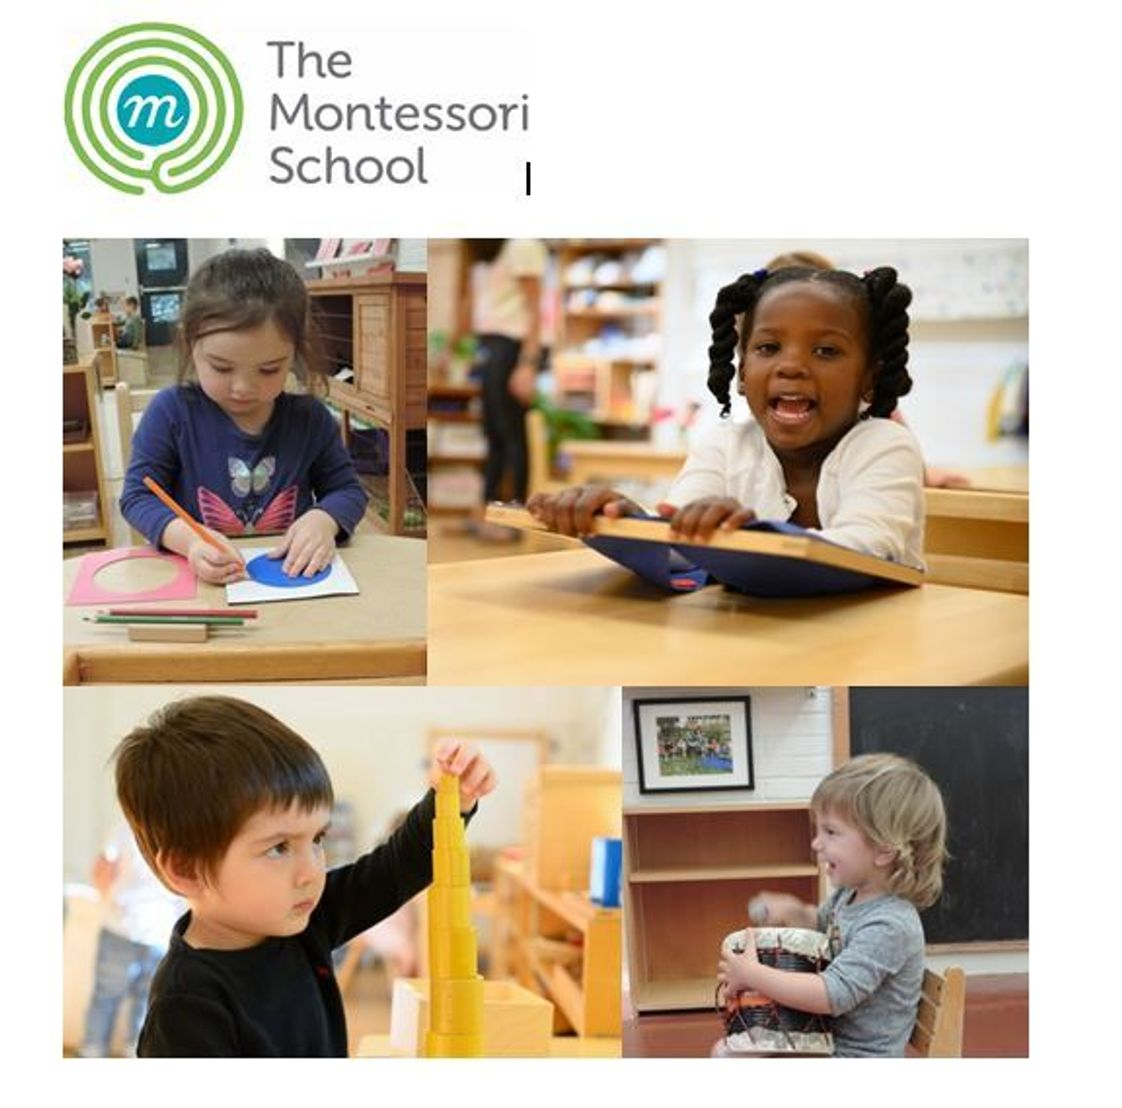 The Montessori School Photo #1